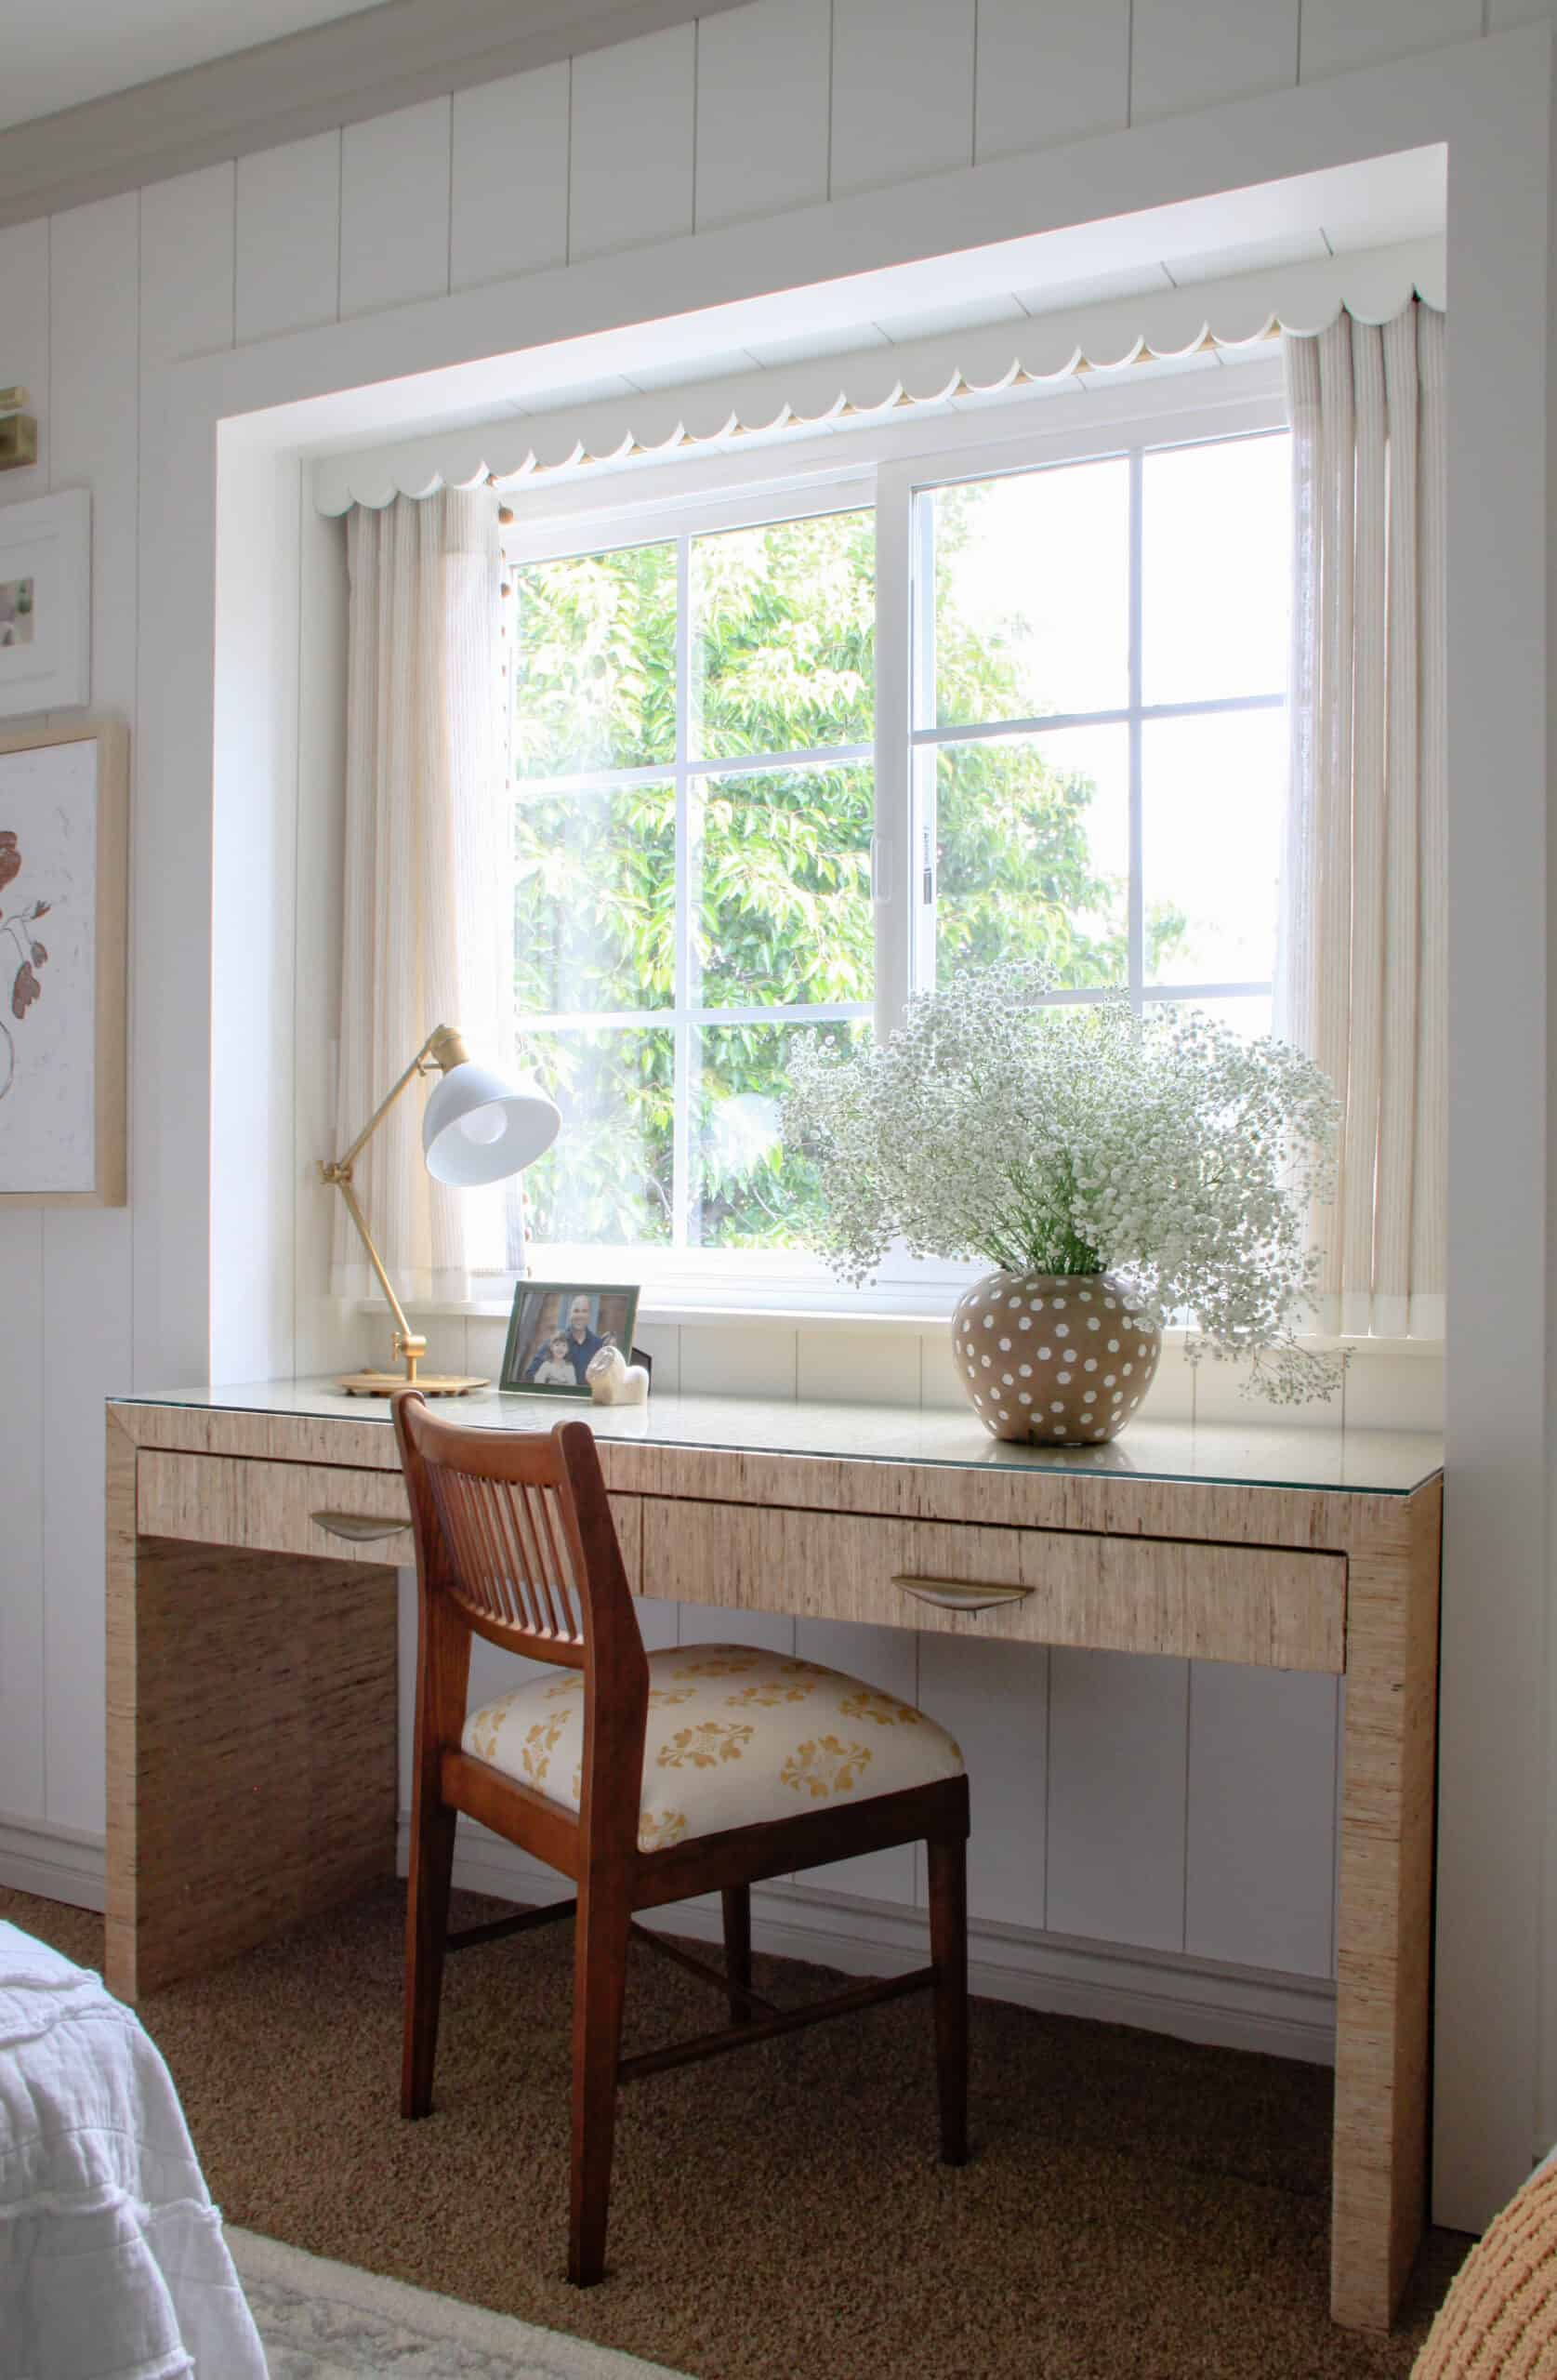 grasscloth desk with vintage chair in front of window with baby's breath in a vase